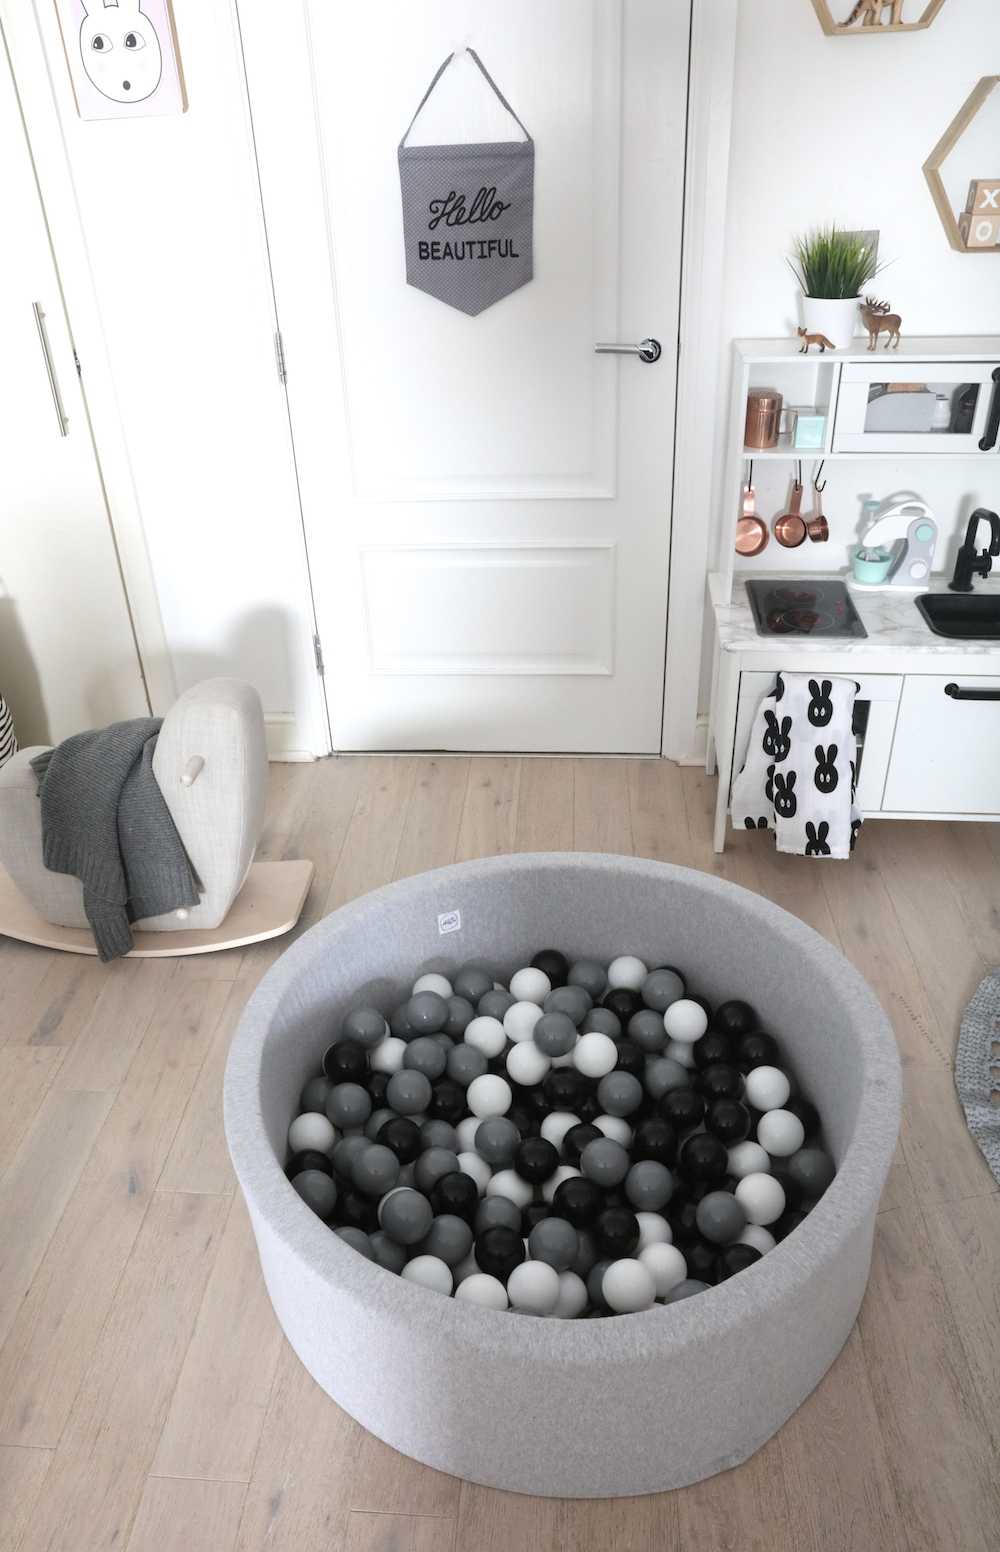 the_modern_nursery_monochrome_ball_pit